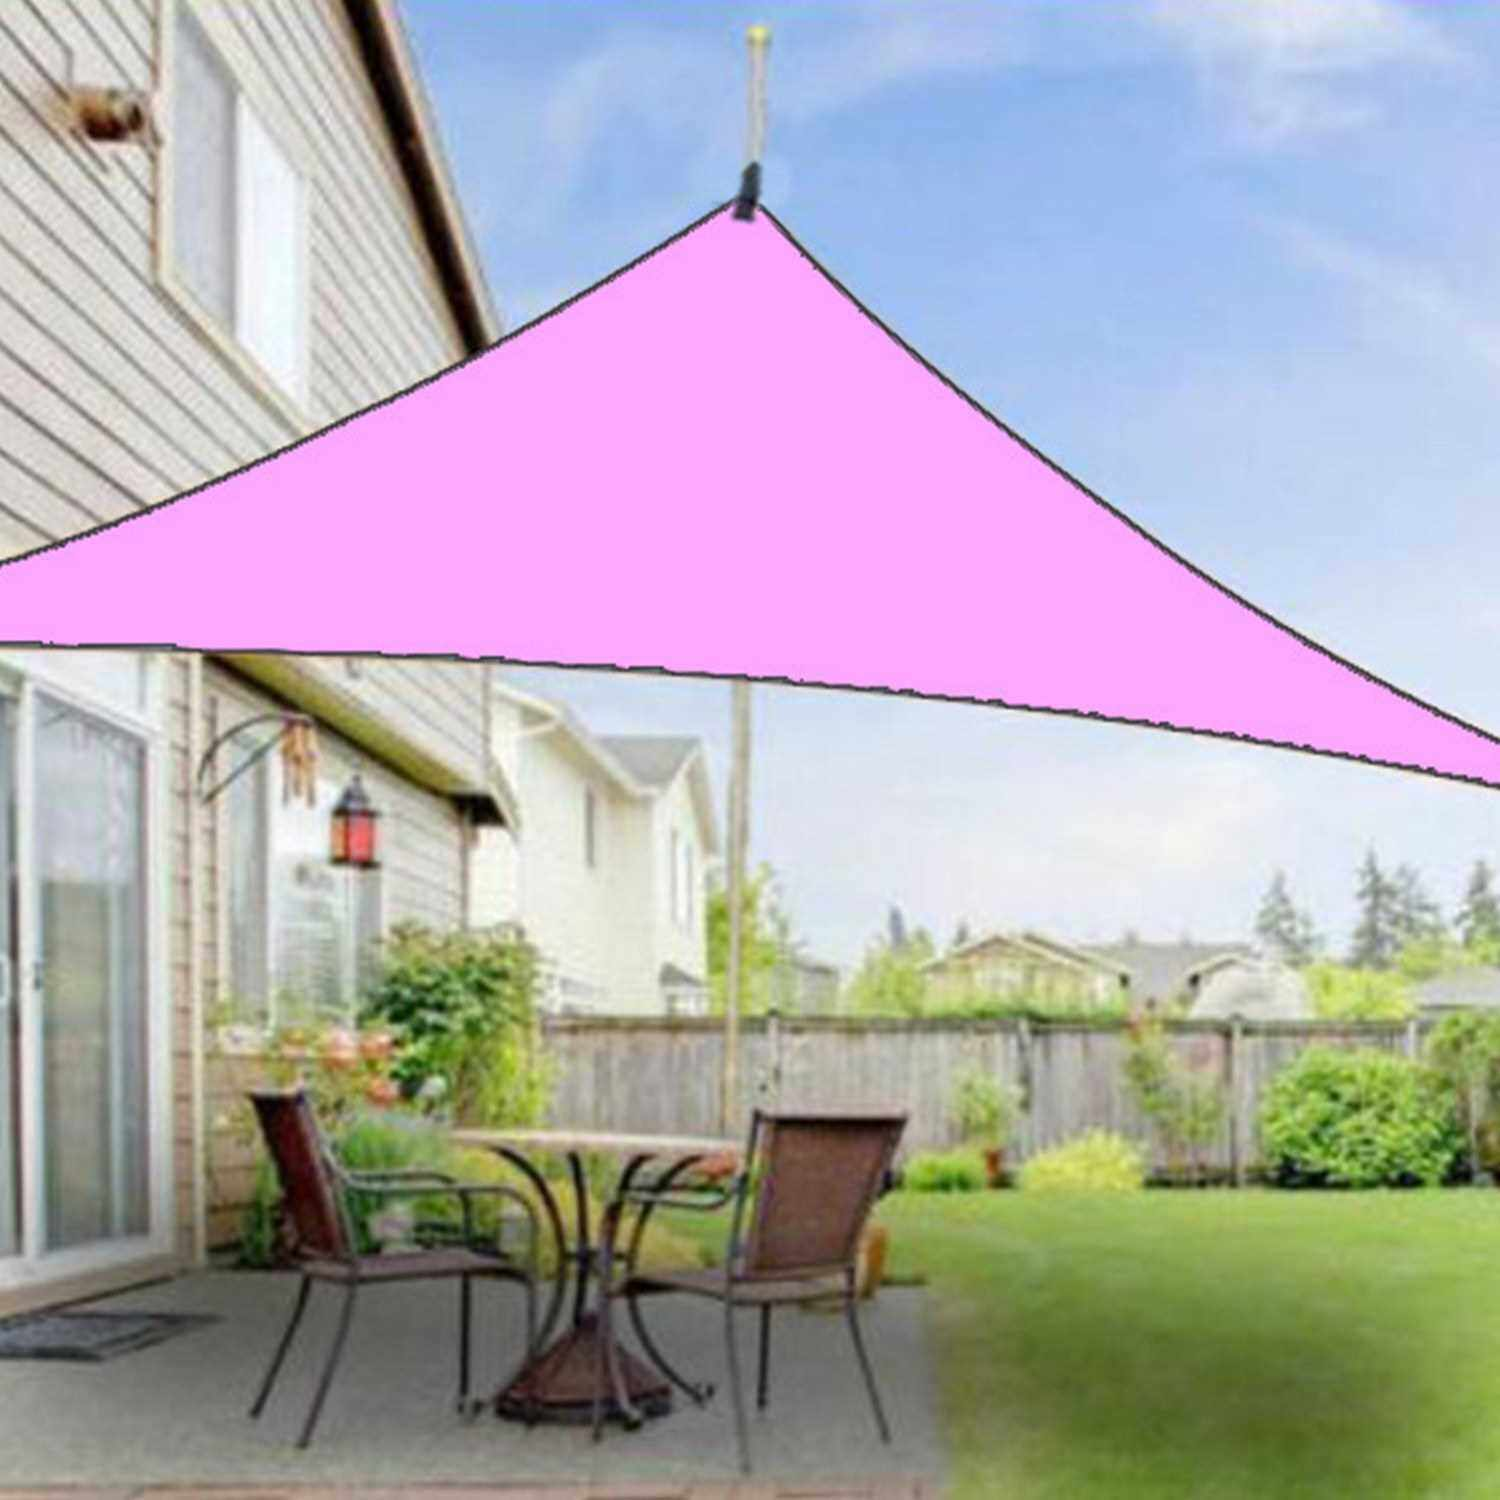 20ft Rain Fly UV Resistant Sun Shade Sail Canopy Waterproof Heavy Duty Triangle 210T Polyester Awning Sand Sunshade for Outdoor Patio Garden Backyard Activities (Pink)